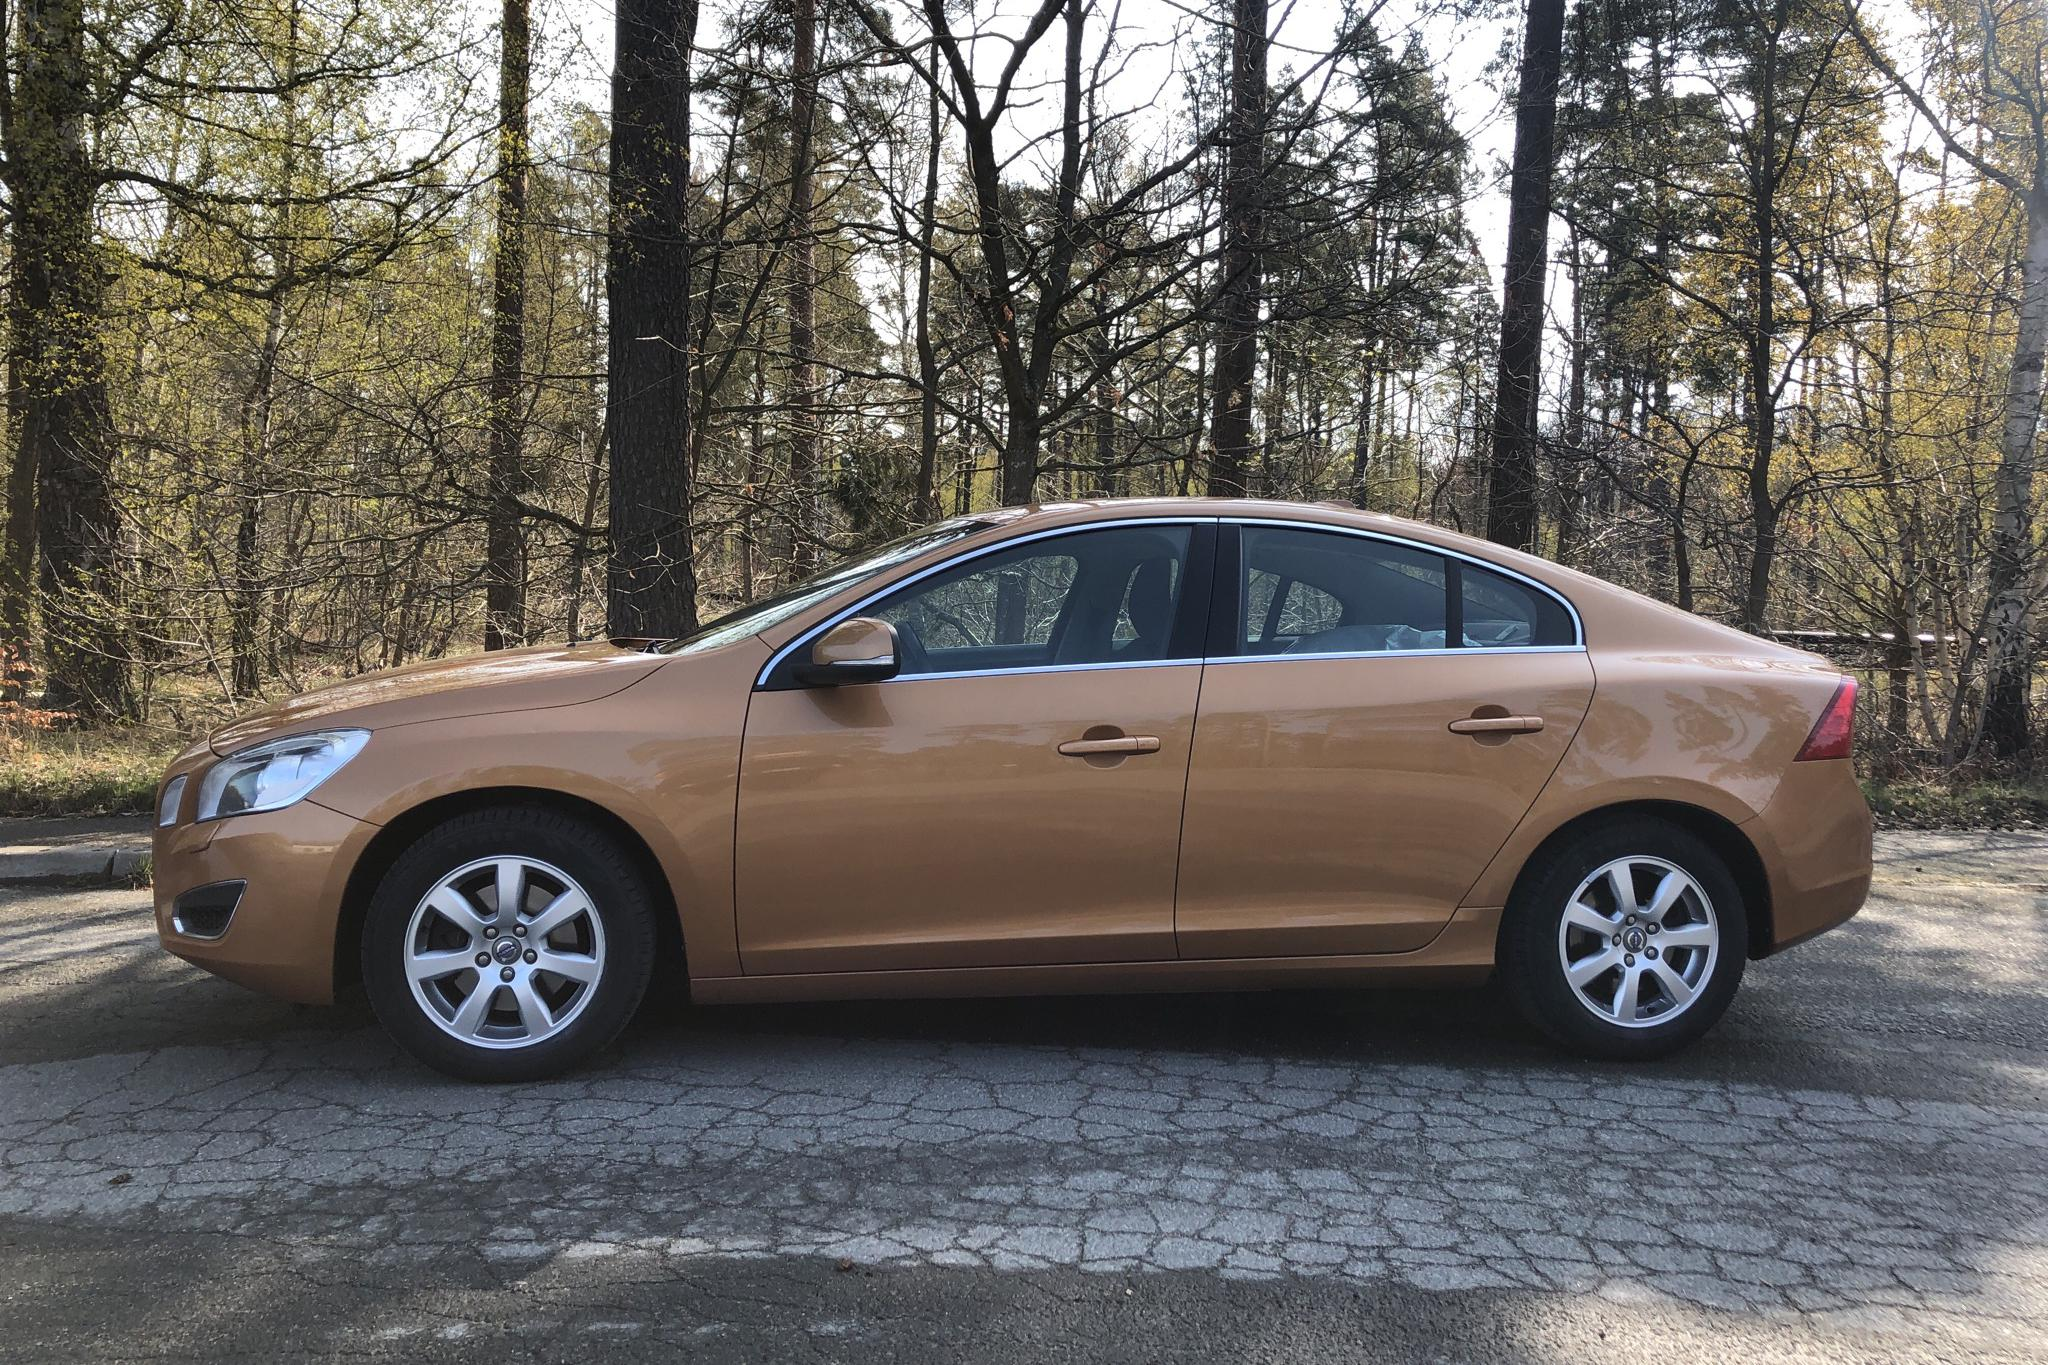 Volvo S60 D3 (163hk) - 152 250 km - Manual - brown - 2011